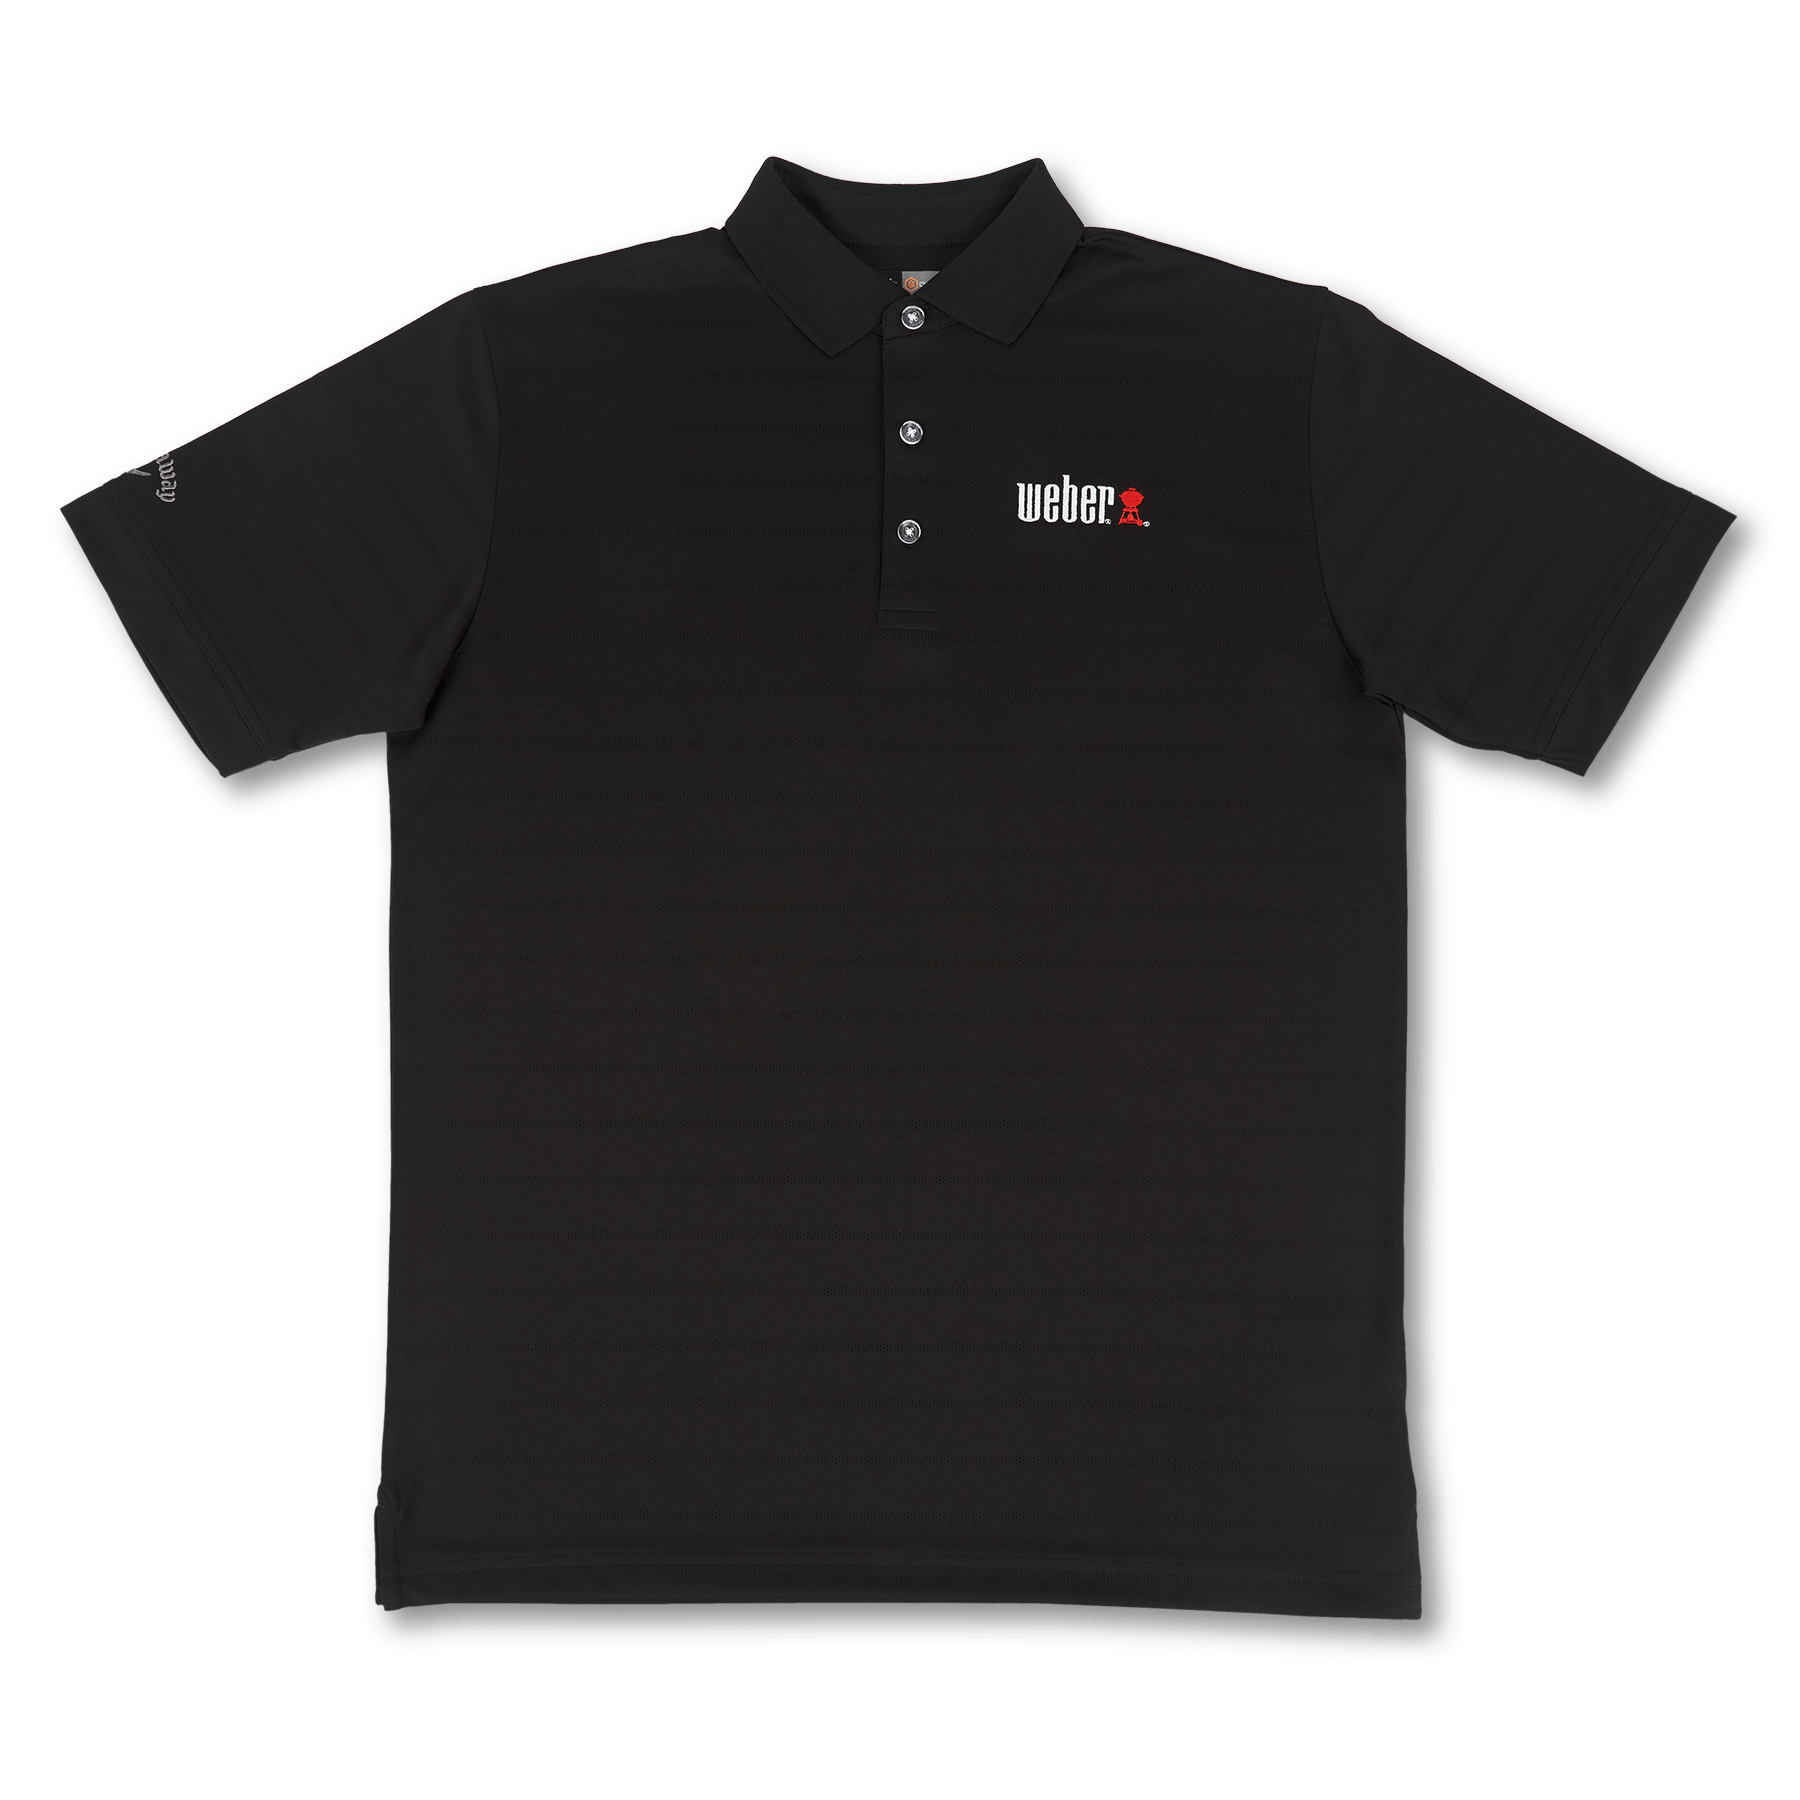 Weber Logo Polo Shirt